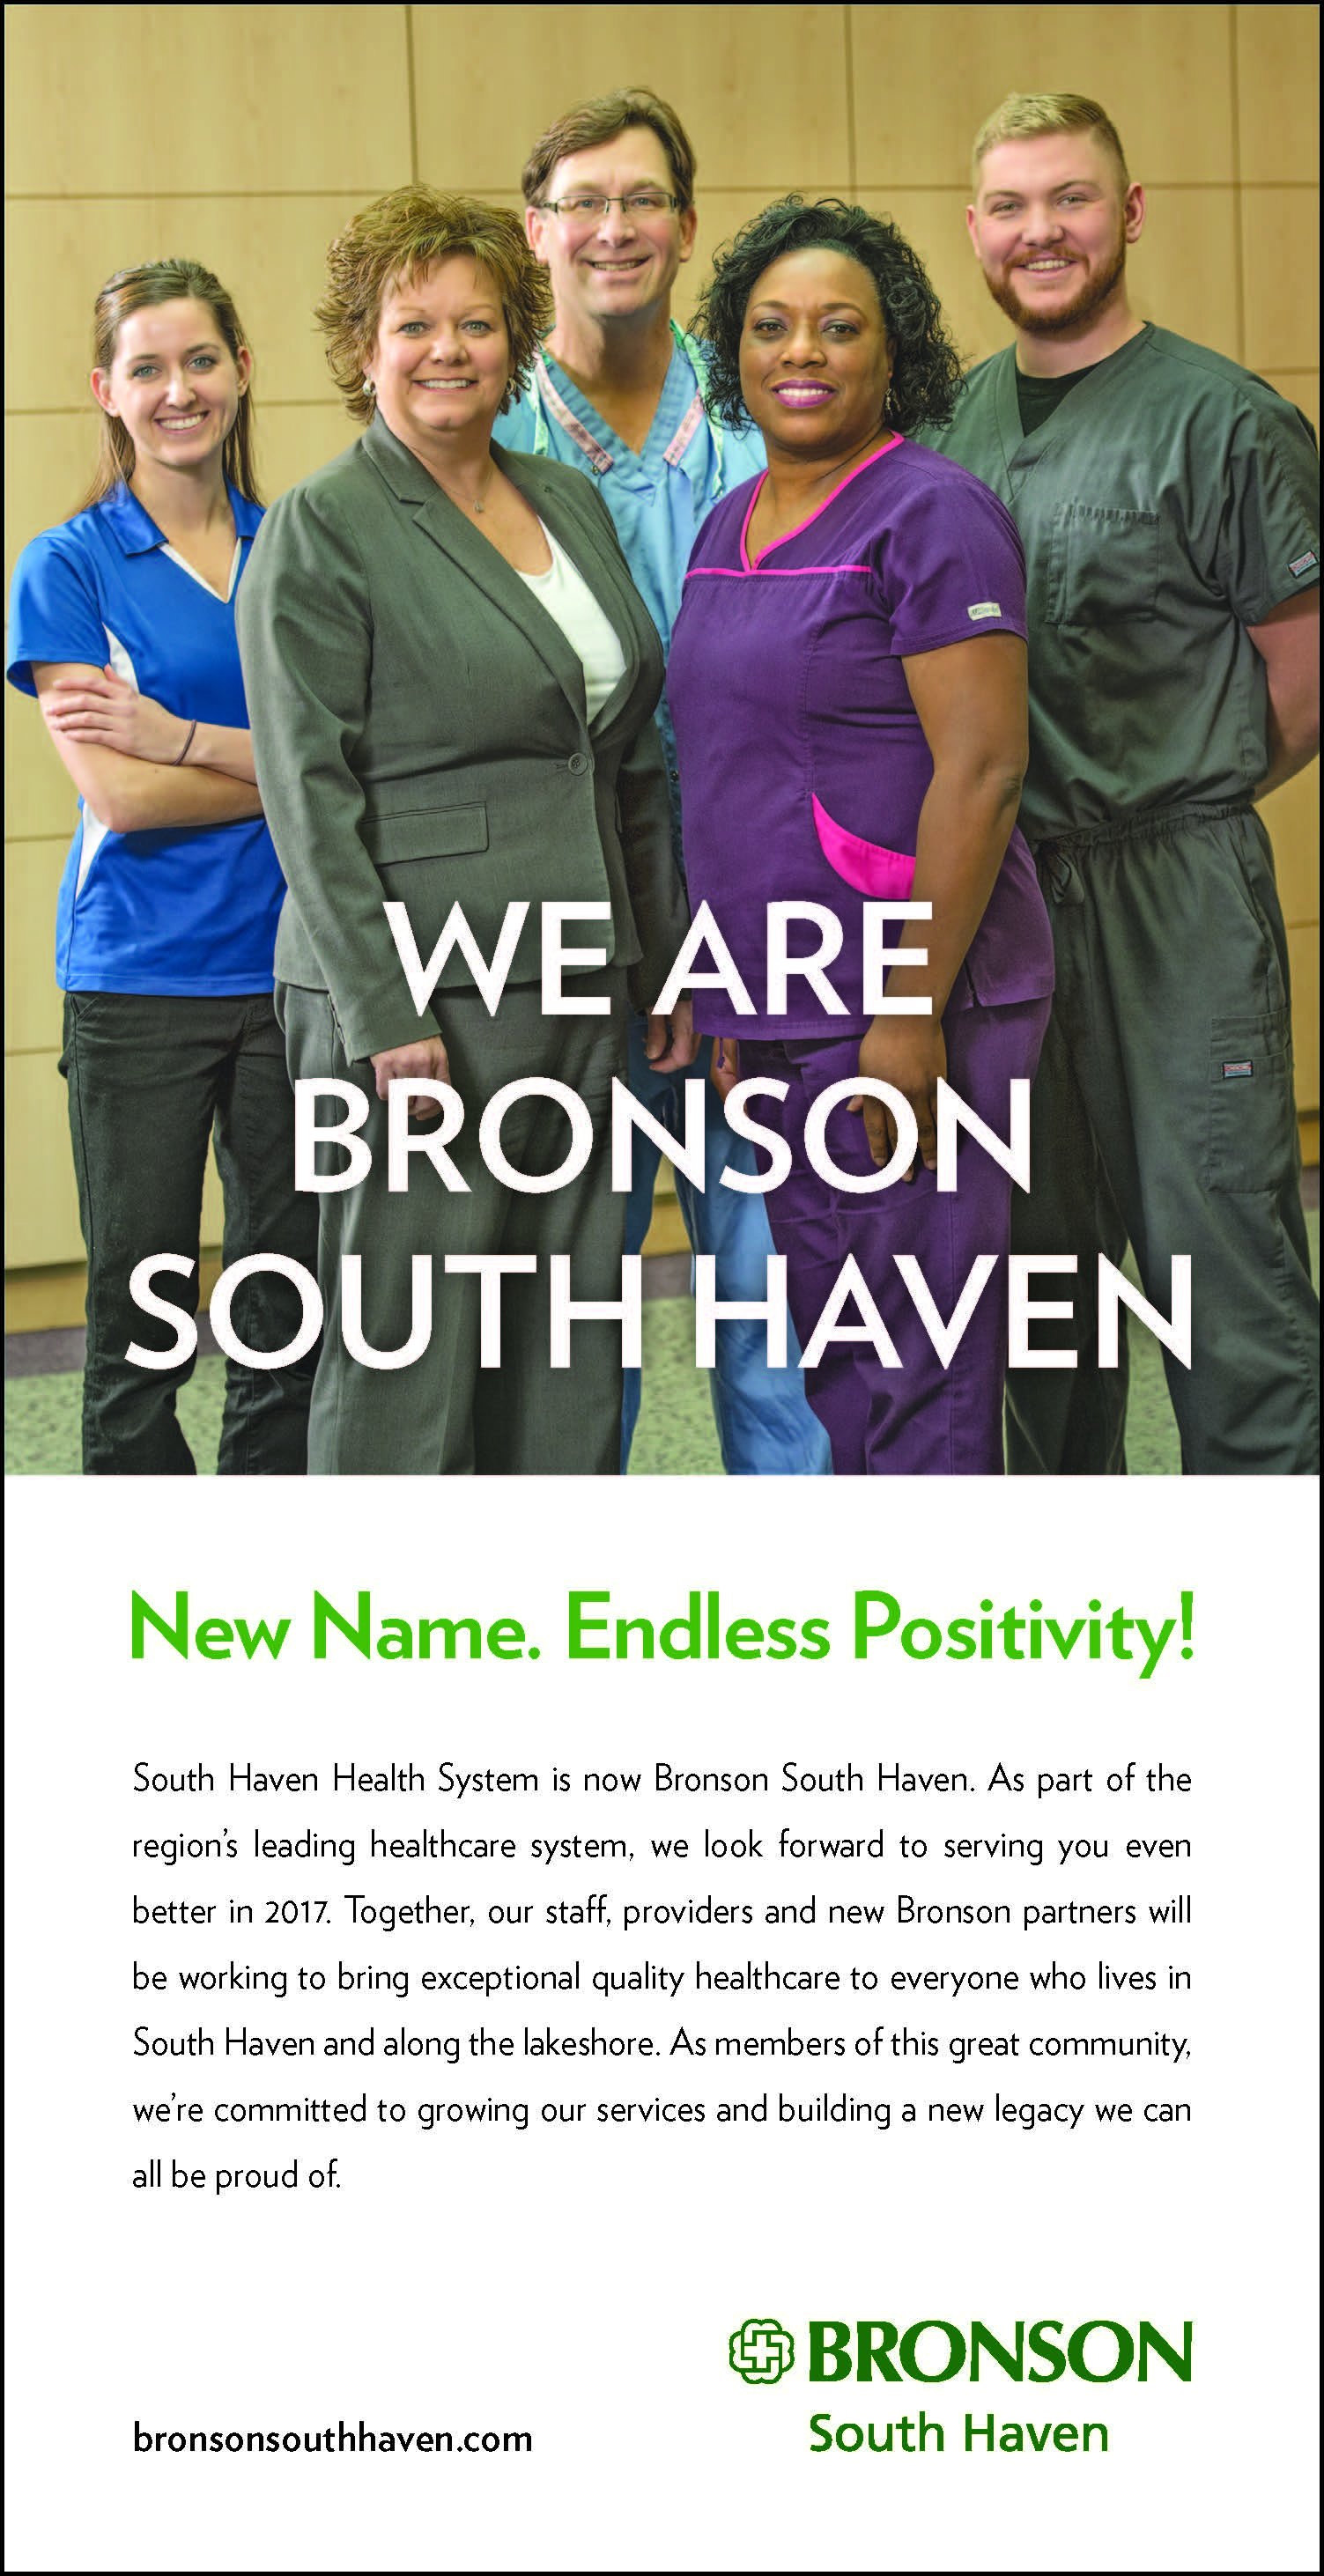 Print advertisement for Bronson South Haven.